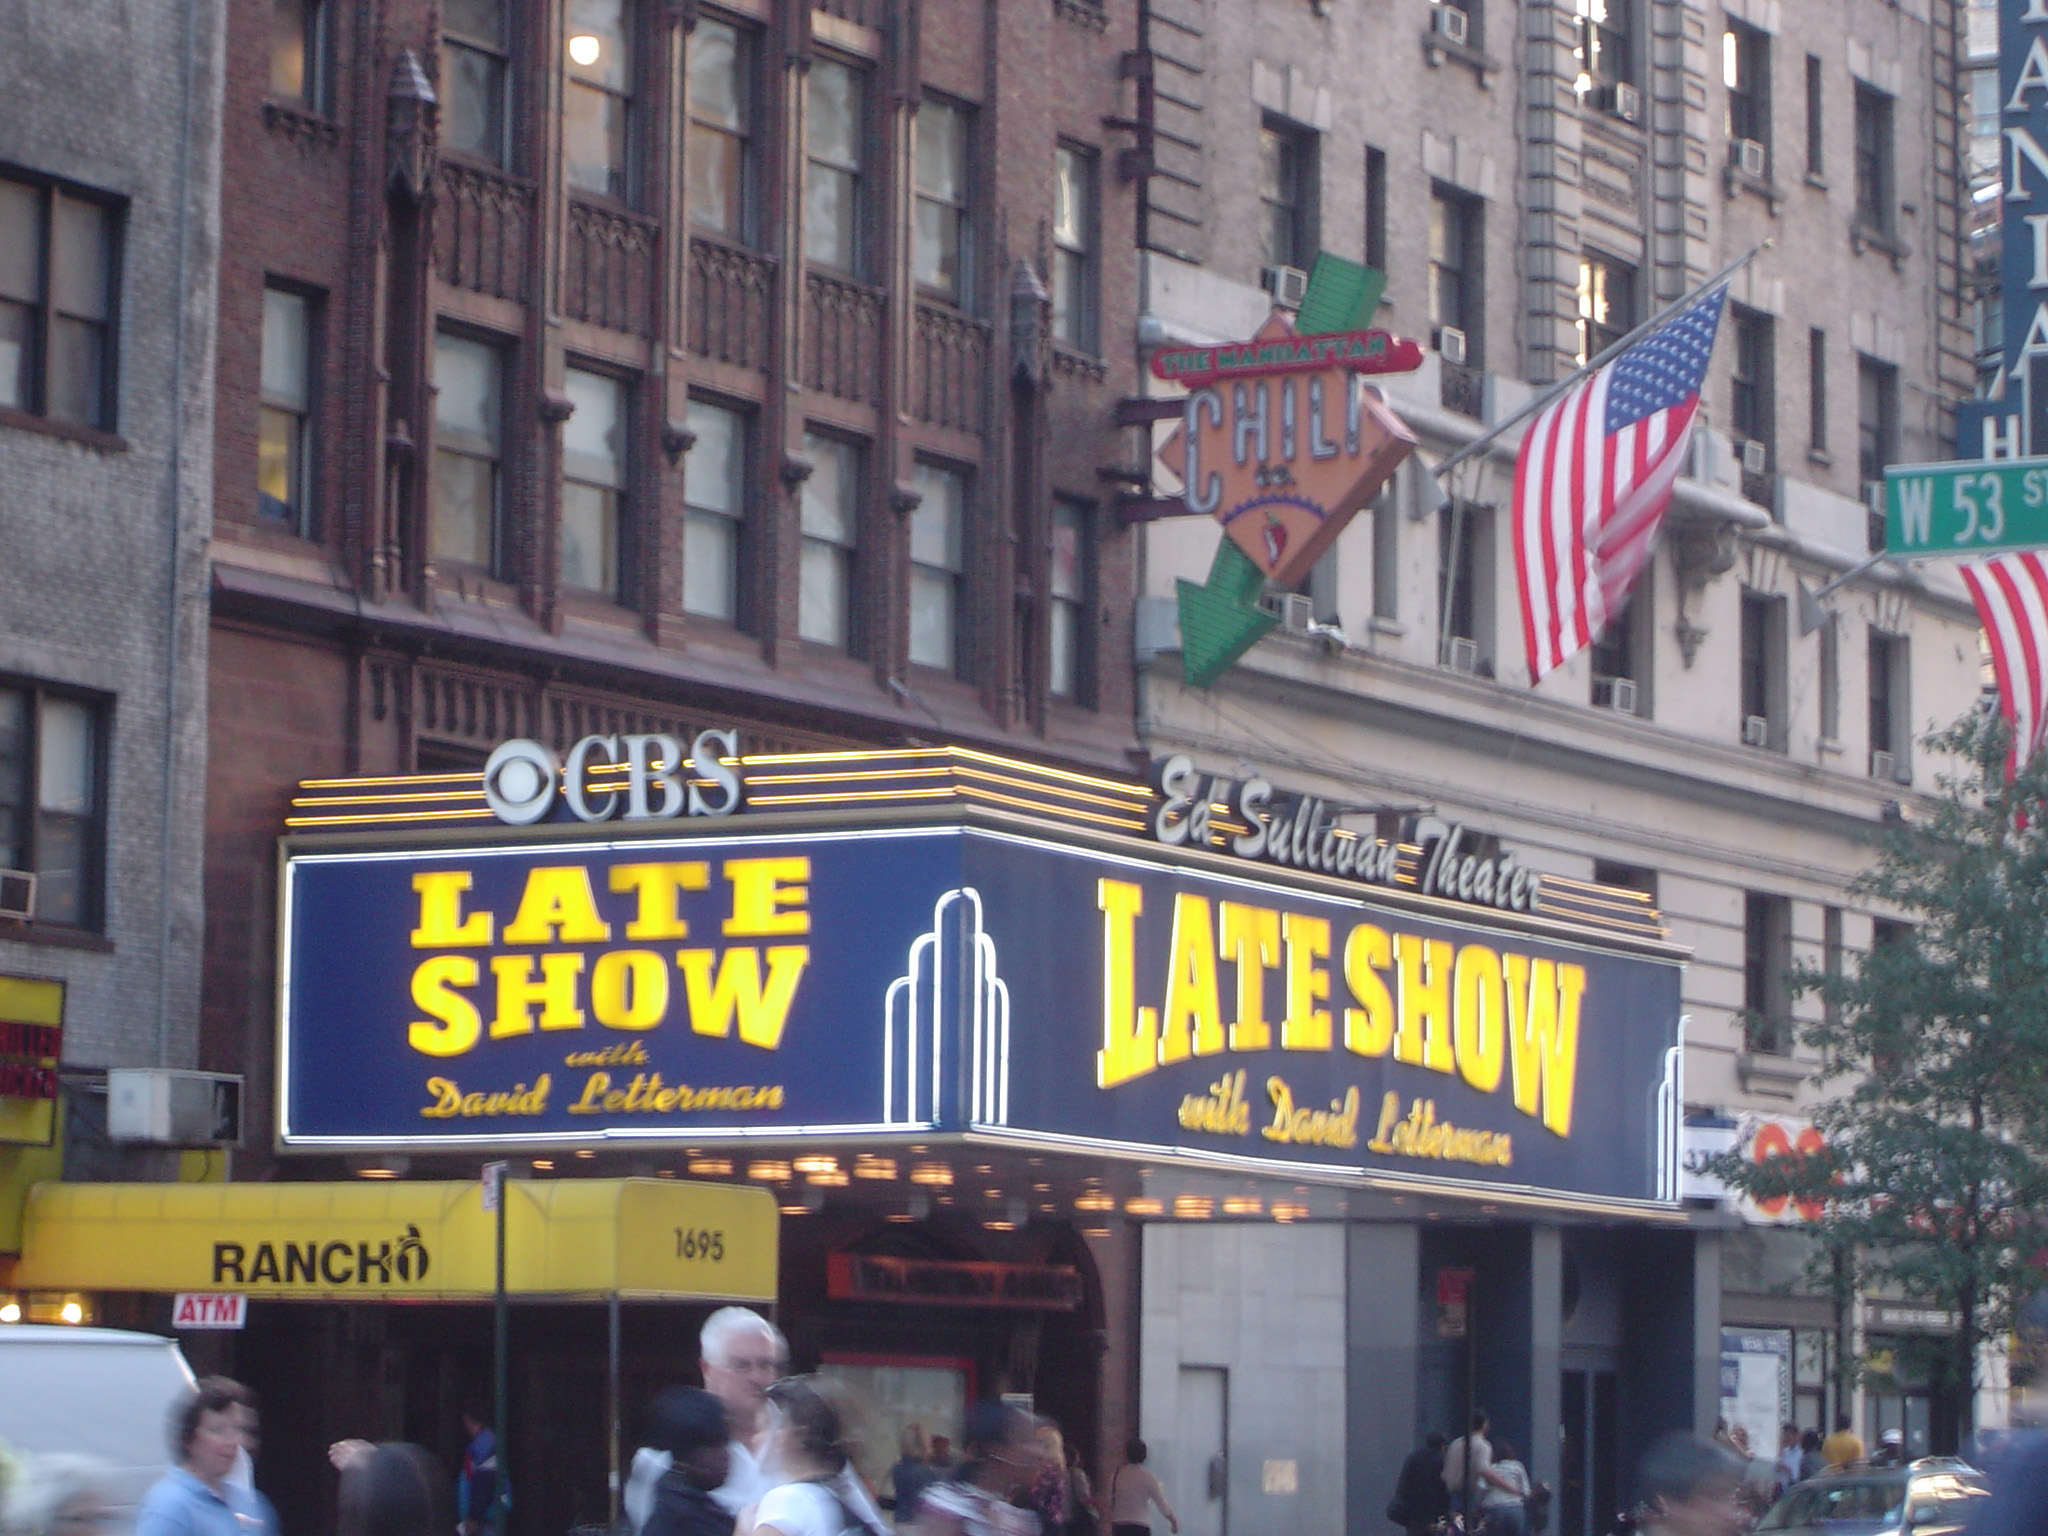 Late Show with David Letterman at Old Vintage Ed Sullivan Theater, where the Late Show is taped